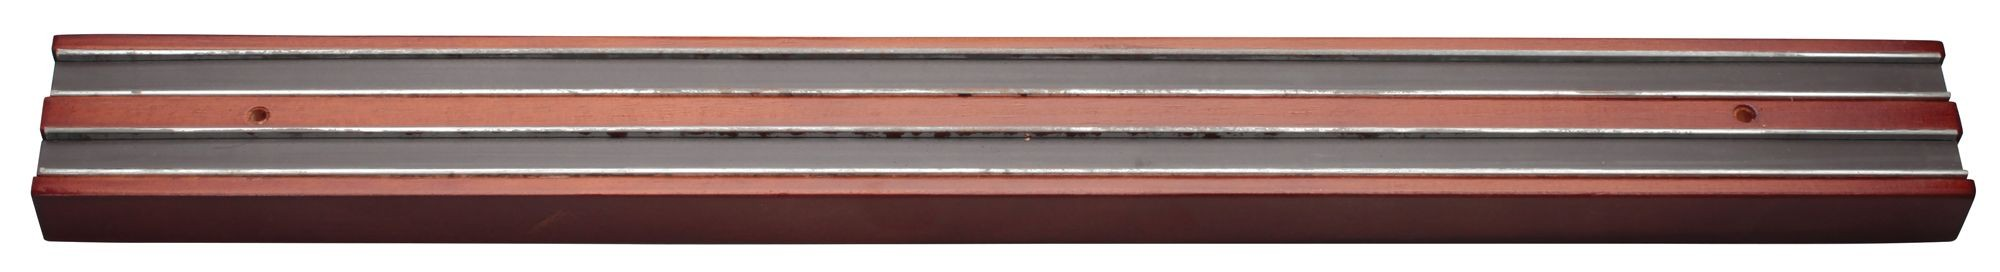 Winco wmb-24 Wooden Magnetic Knife Bar 24""